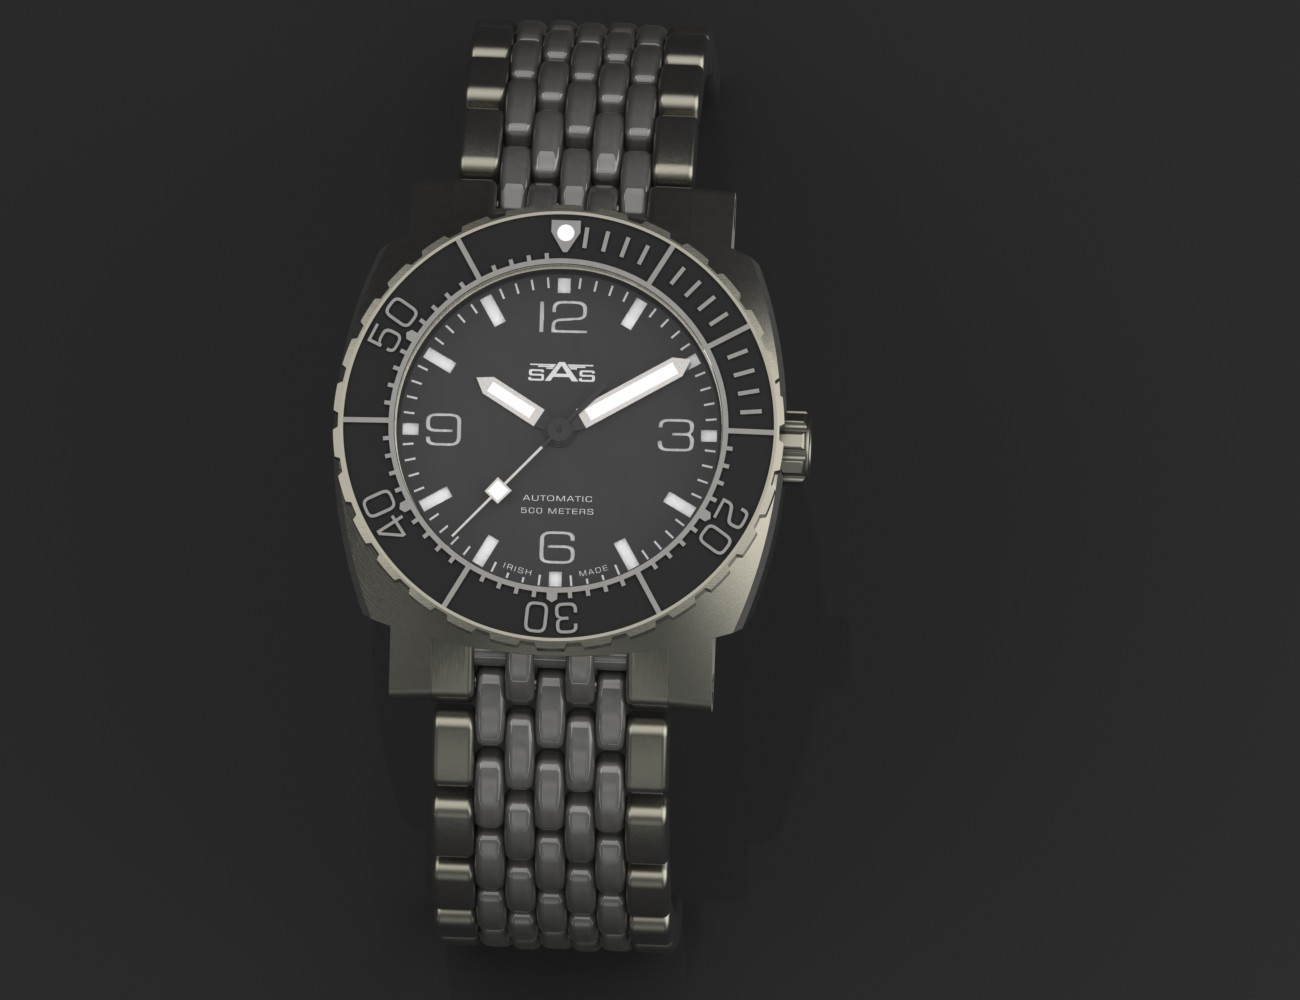 SEA 02 – Professional Commercial Divers Watch